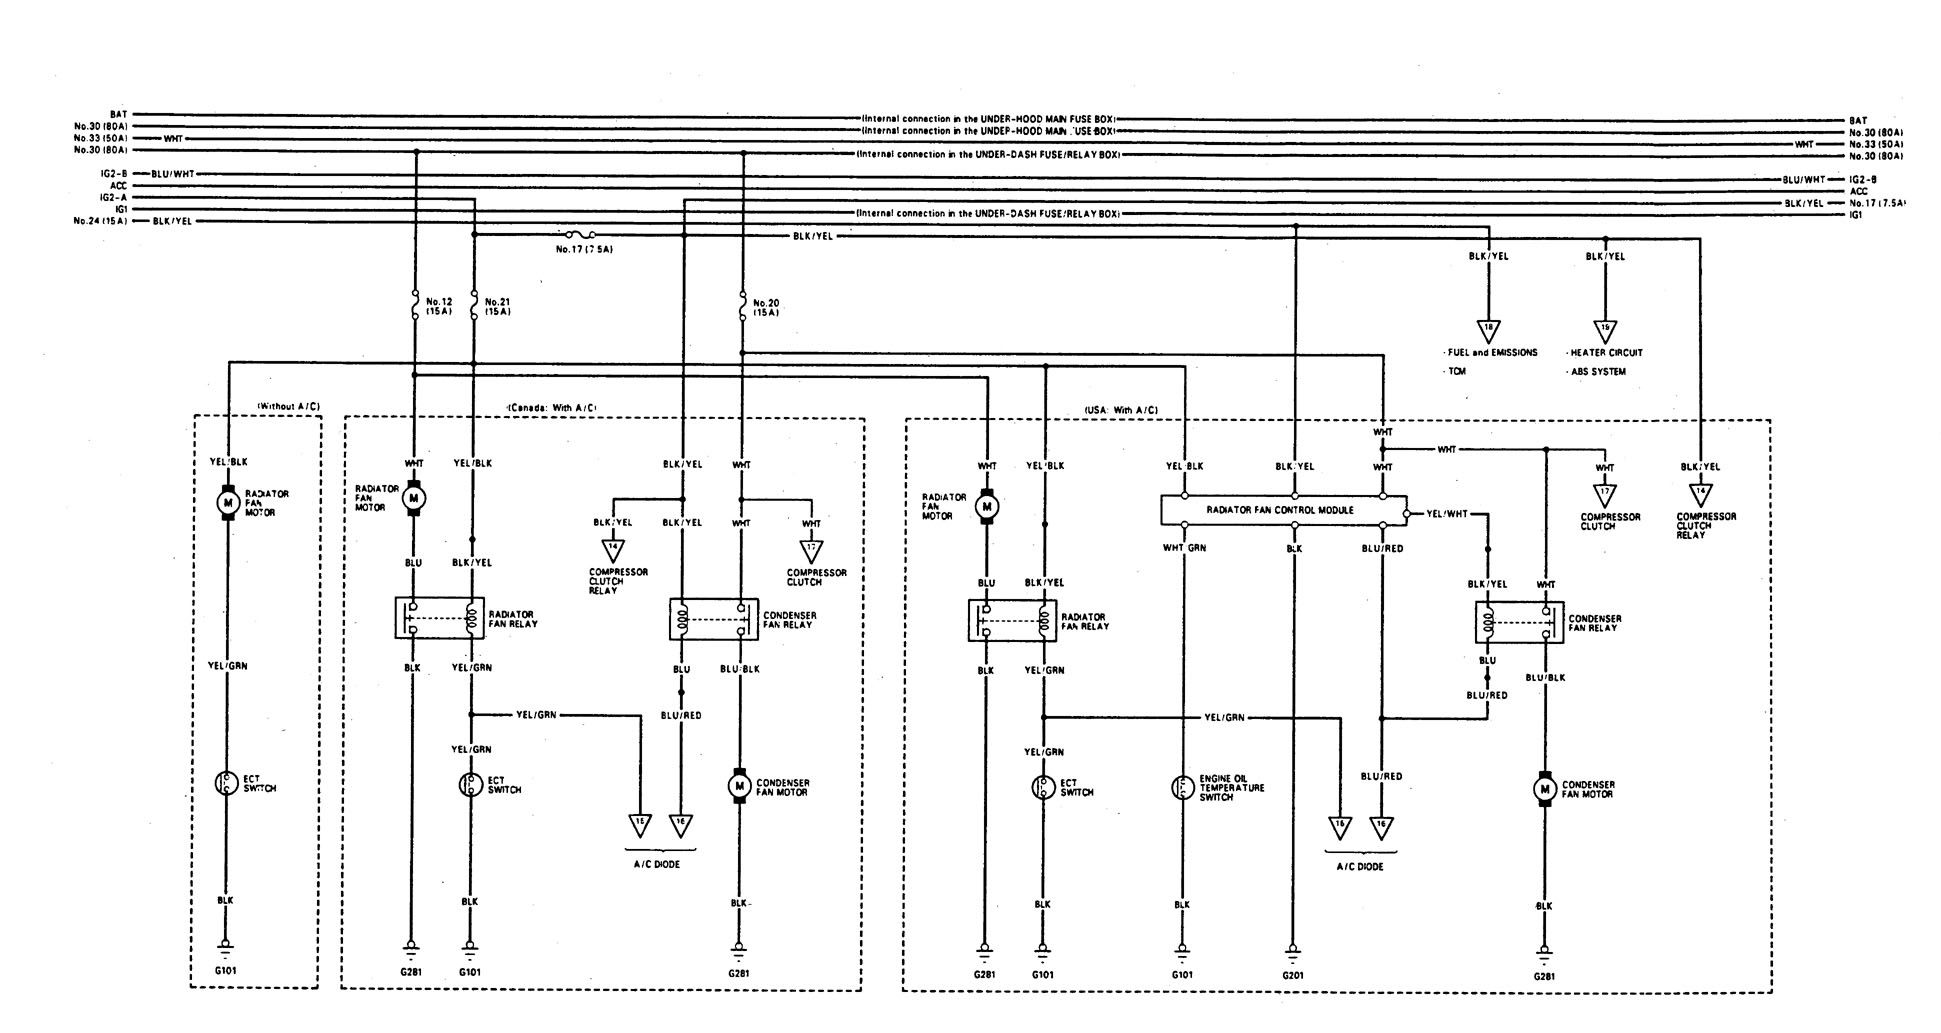 Integra Wire Diagram - Wiring Diagram 500 on eclipse wiring diagram, yamaha wiring diagram, at&t wiring diagram, nissan wiring diagram, technics wiring diagram, toyota wiring diagram, kenwood wiring diagram, bmw wiring diagram, matrix wiring diagram, mitsubishi wiring diagram, ford wiring diagram, sony wiring diagram, acura wiring diagram, pioneer wiring diagram, ge wiring diagram, camaro wiring diagram, 3000gt wiring diagram, mustang wiring diagram, fisher wiring diagram, jvc wiring diagram,